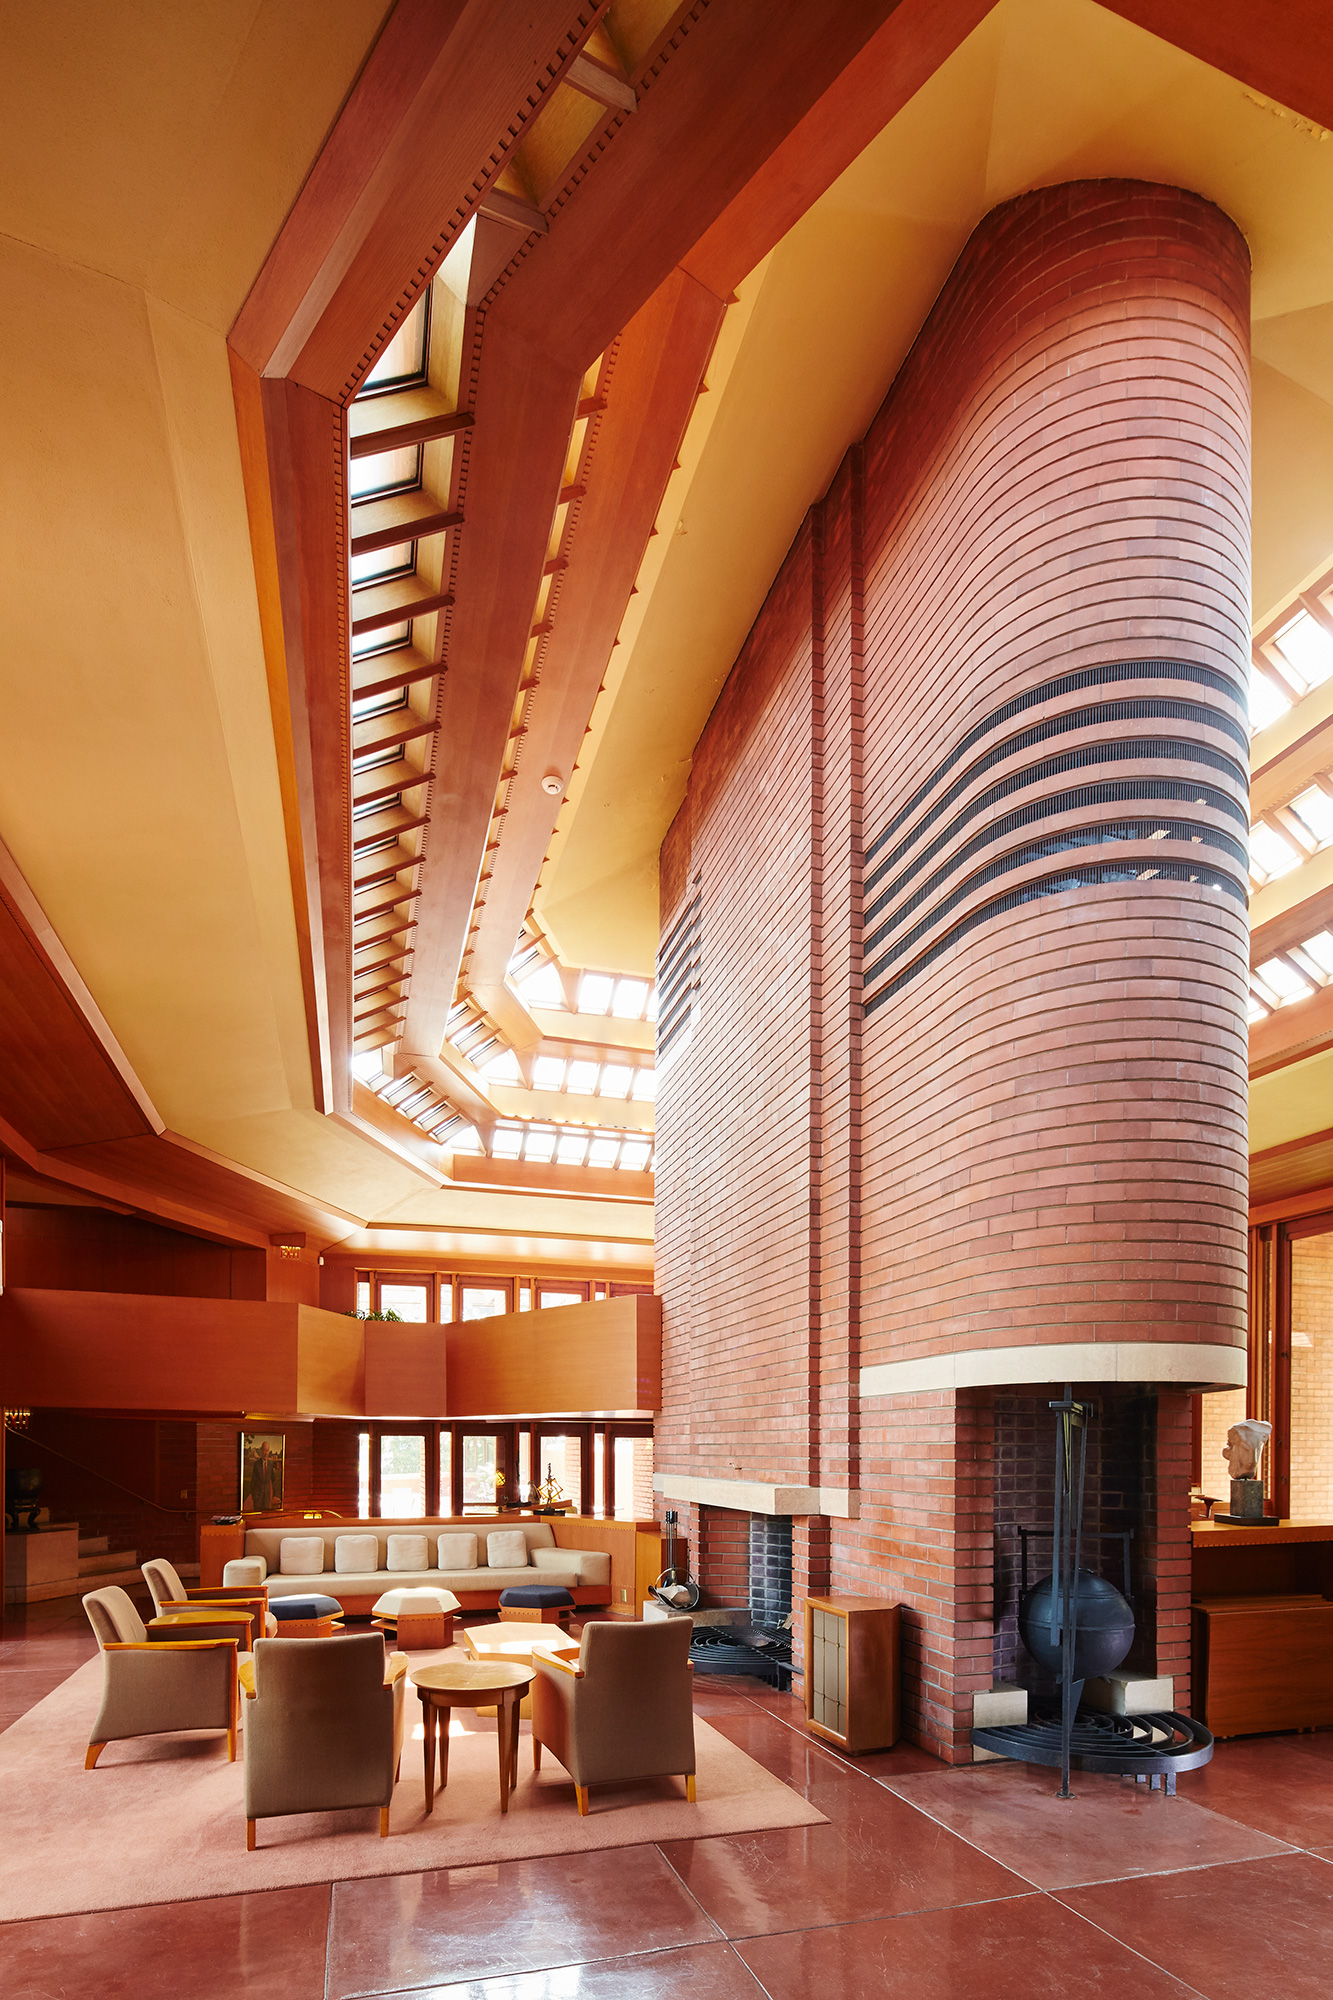 Dans la maison de H.F Johnson Jr, Wingspread, conçue par Frank Lloyd Wright